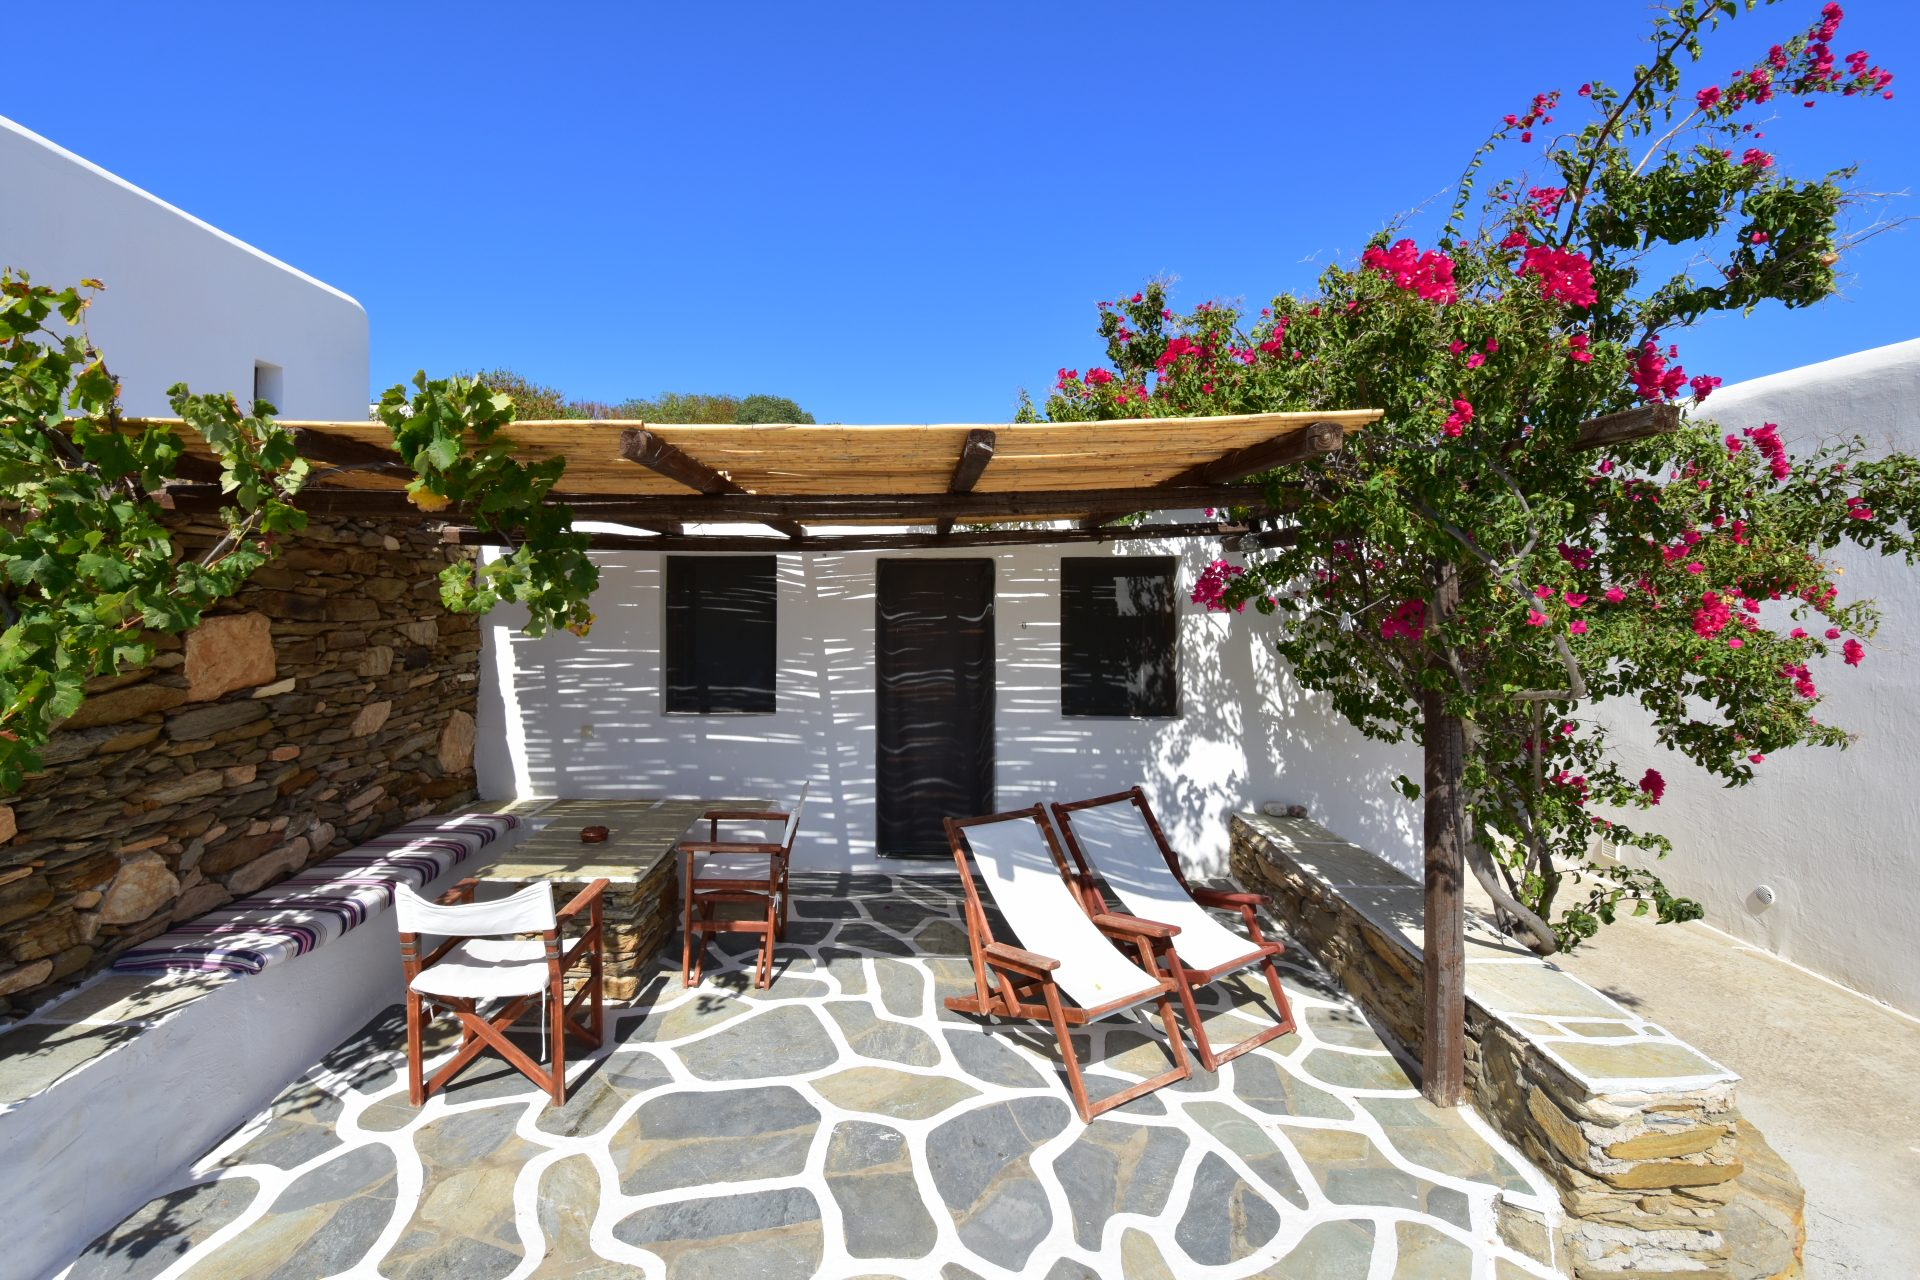 ios greece accommodation airbnb